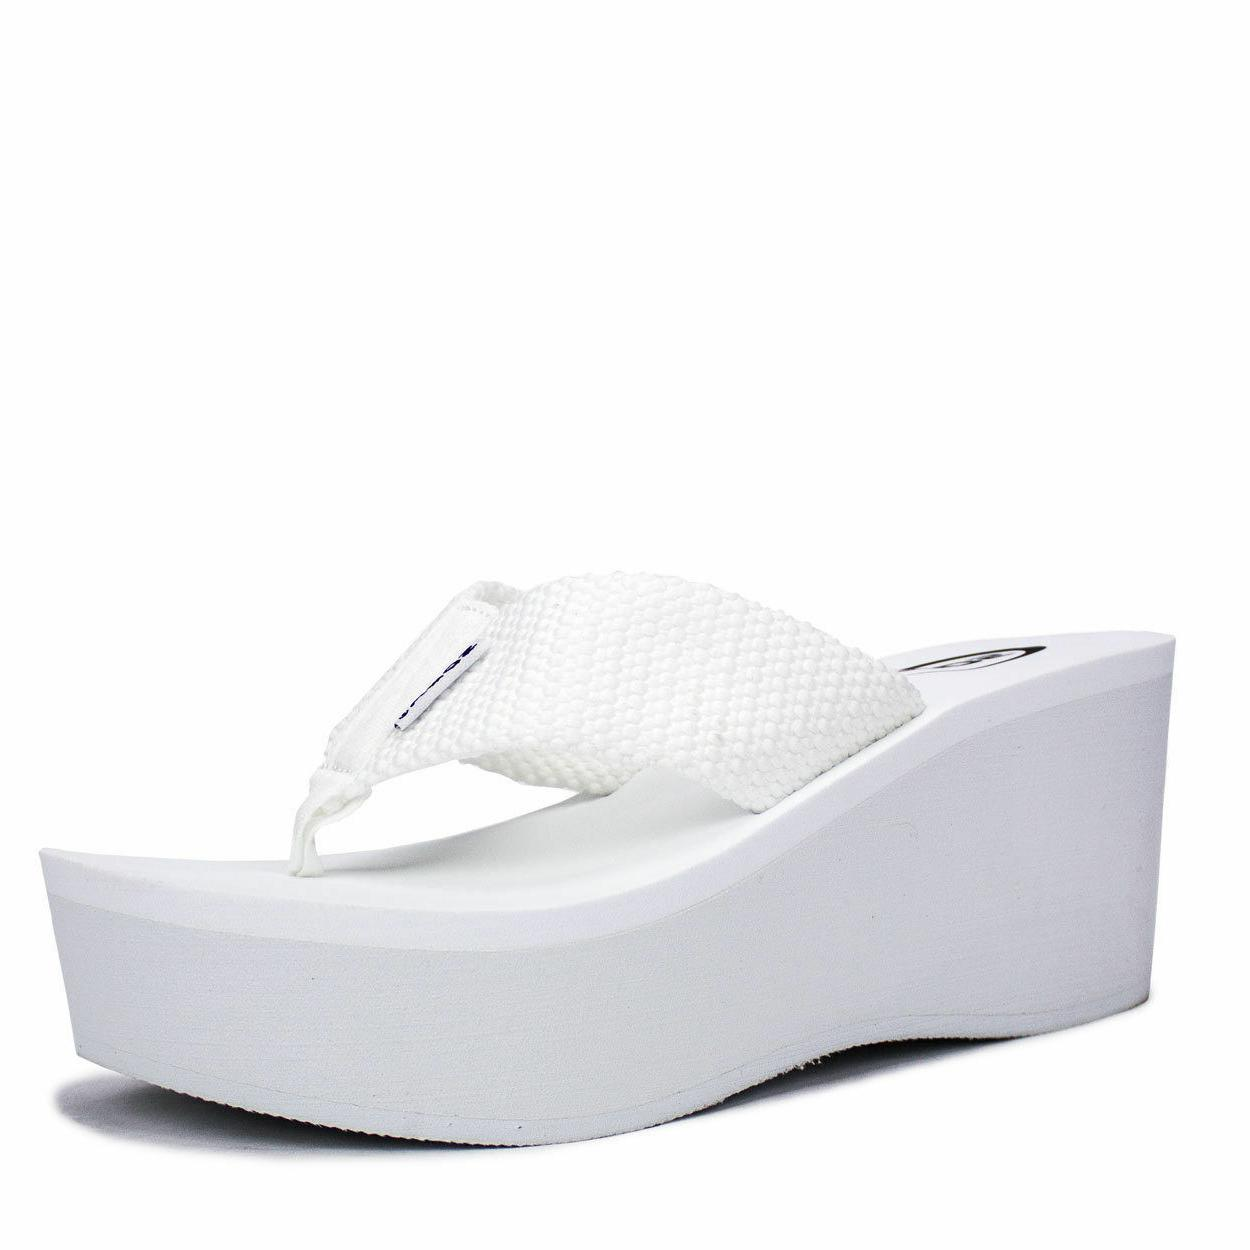 "WEDGE 3"" PLATFORM SANDALS SODA"